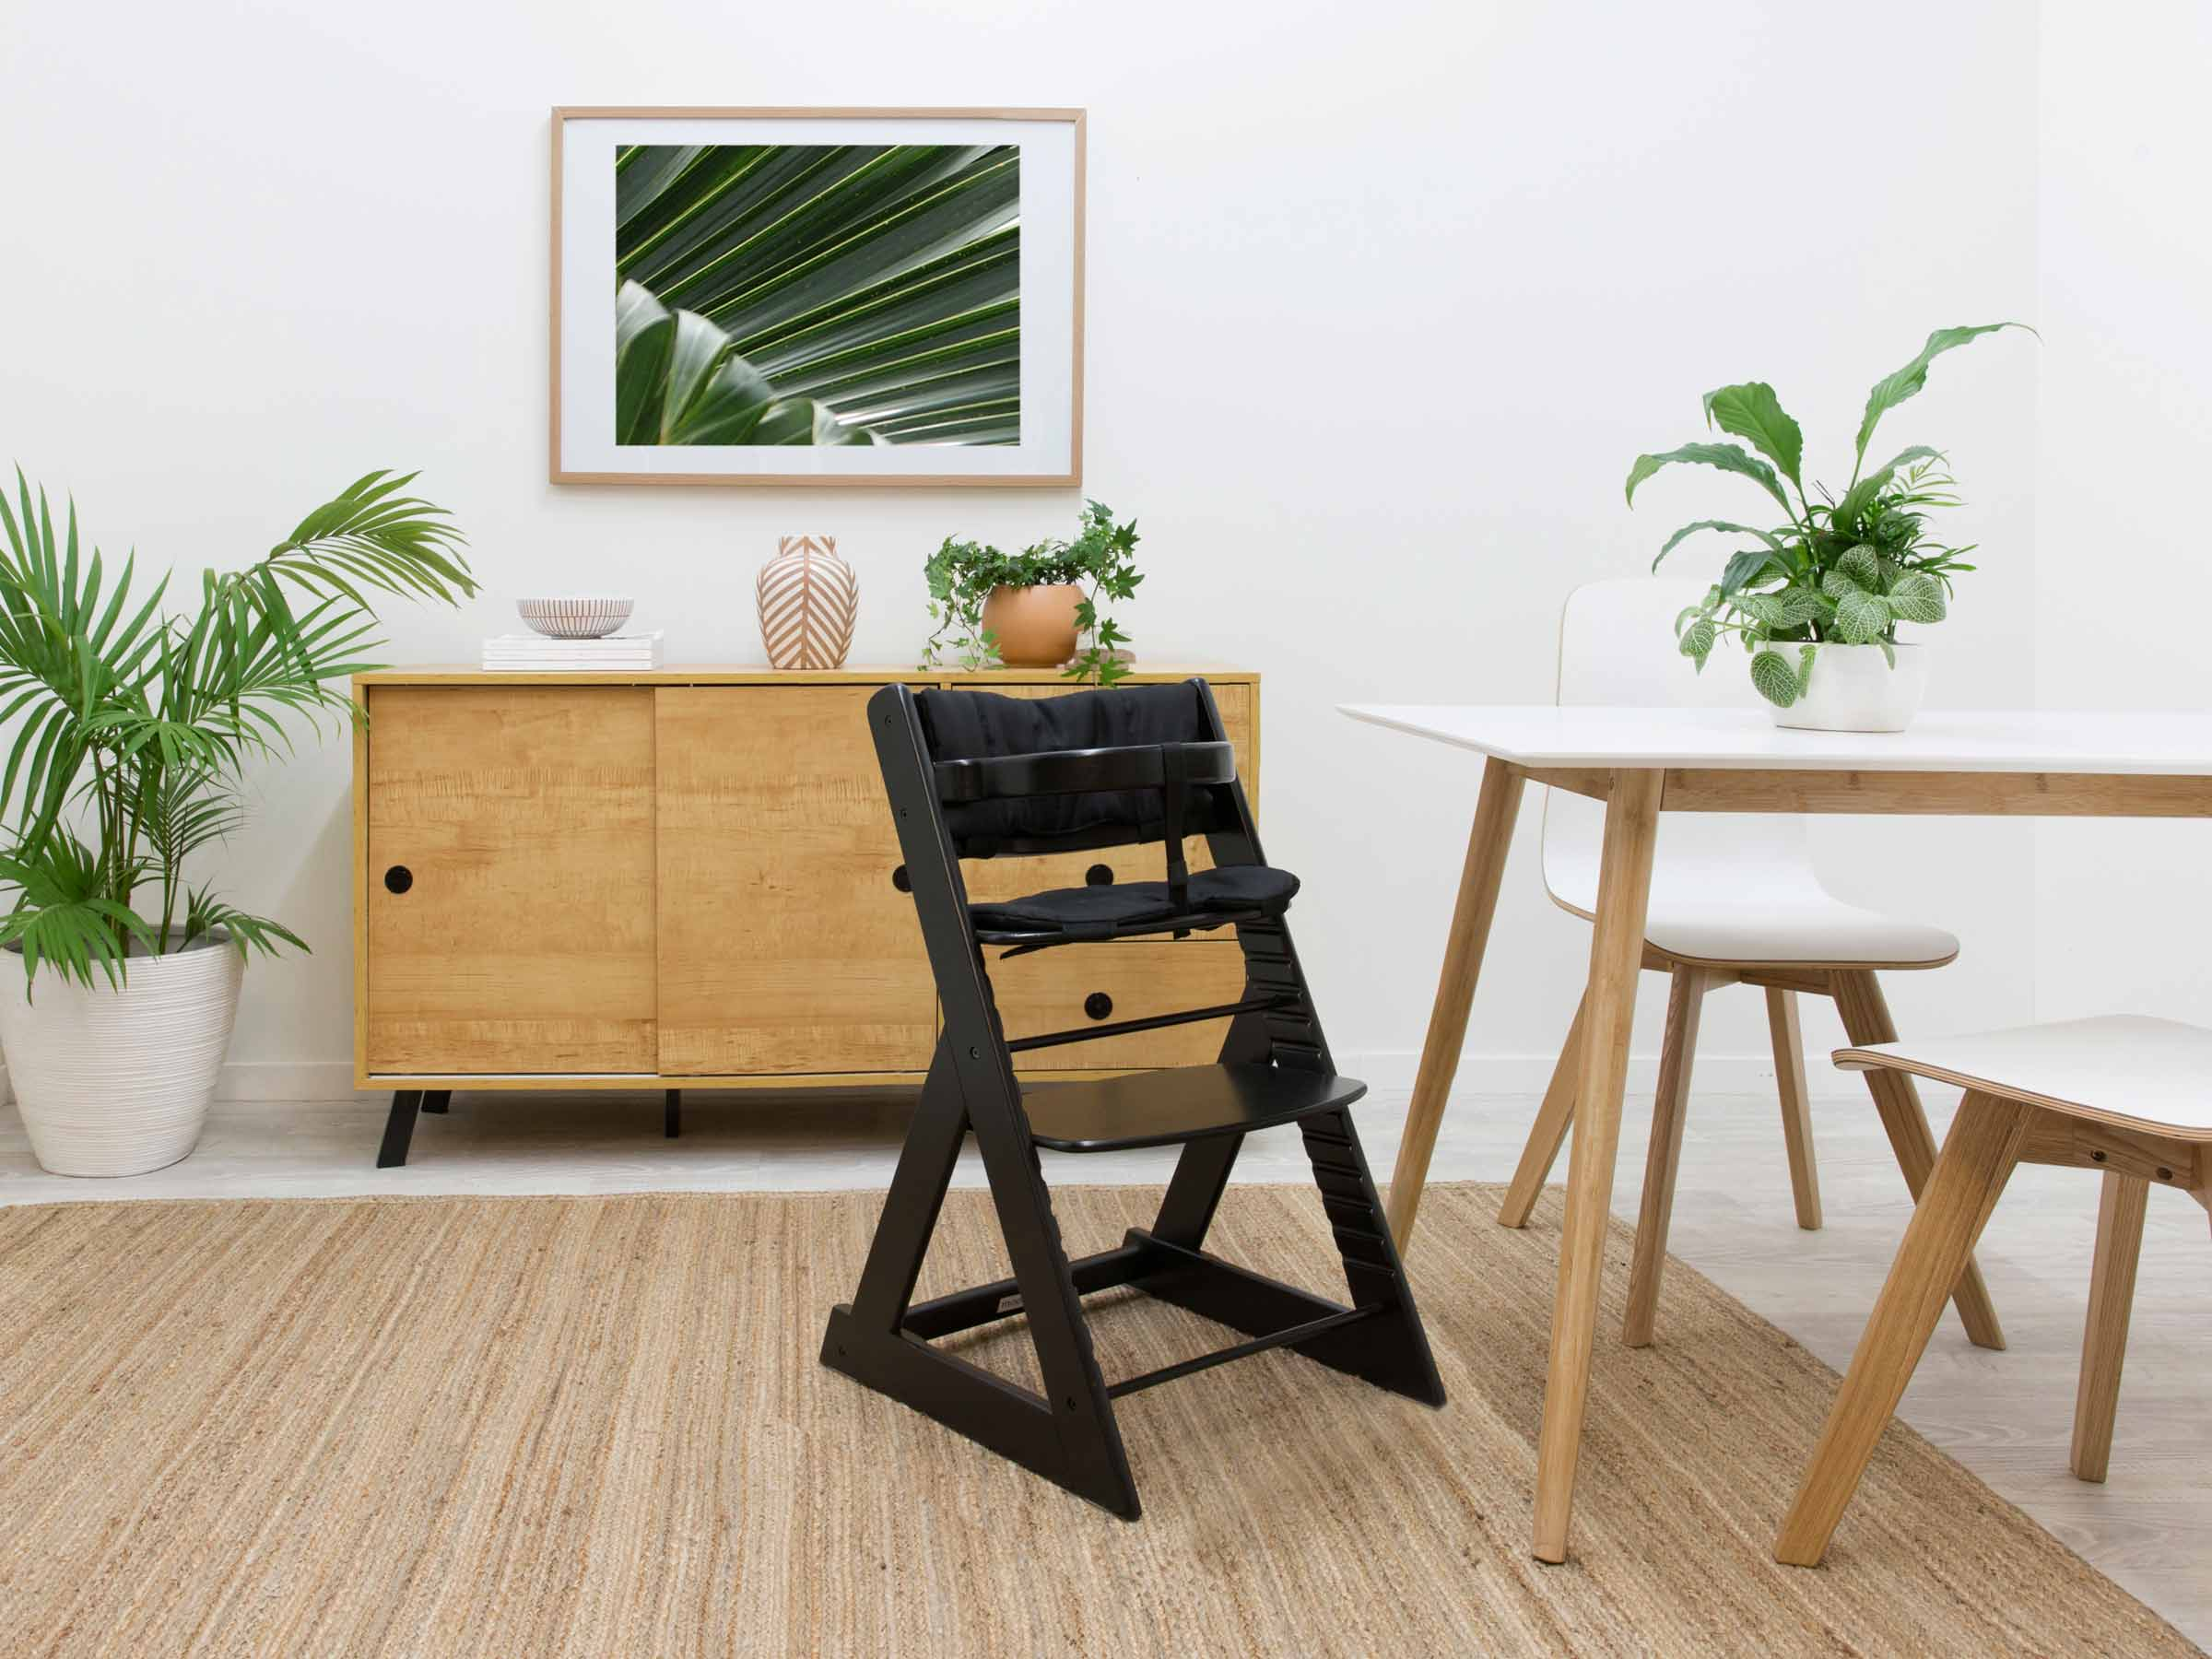 Soho Wooden Highchair - Black